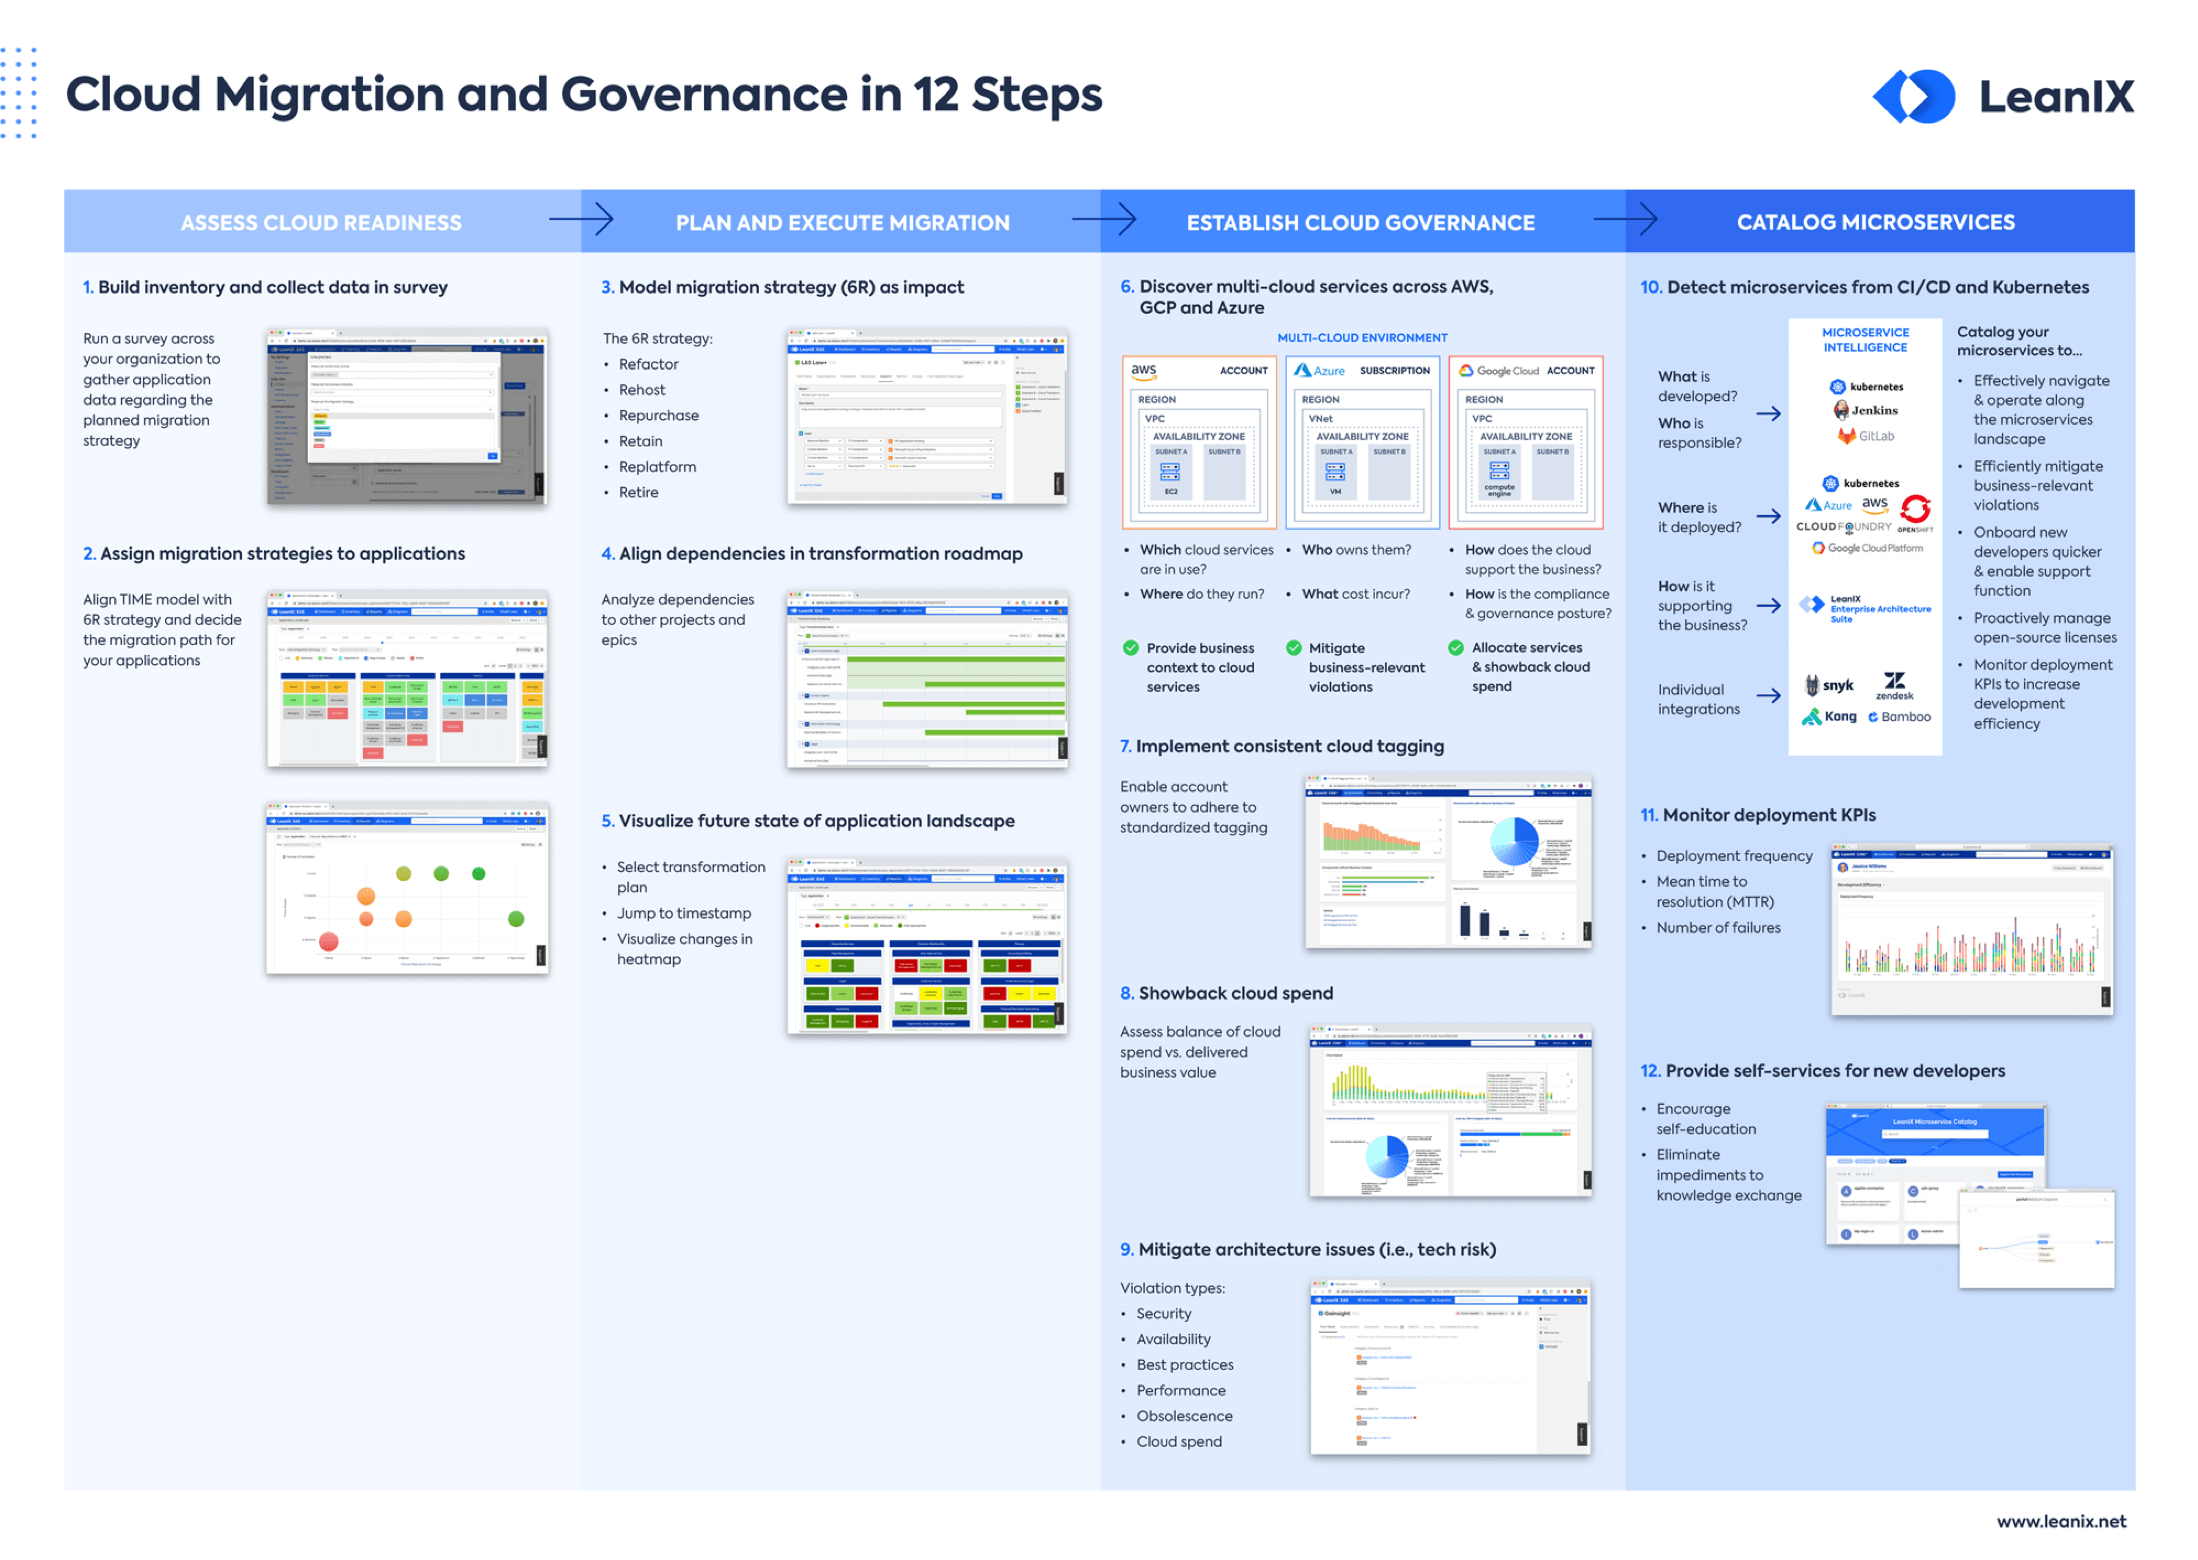 EN-Cloud-Migration-and-Governance-12Steps-Poster_Landing_Page_Preview